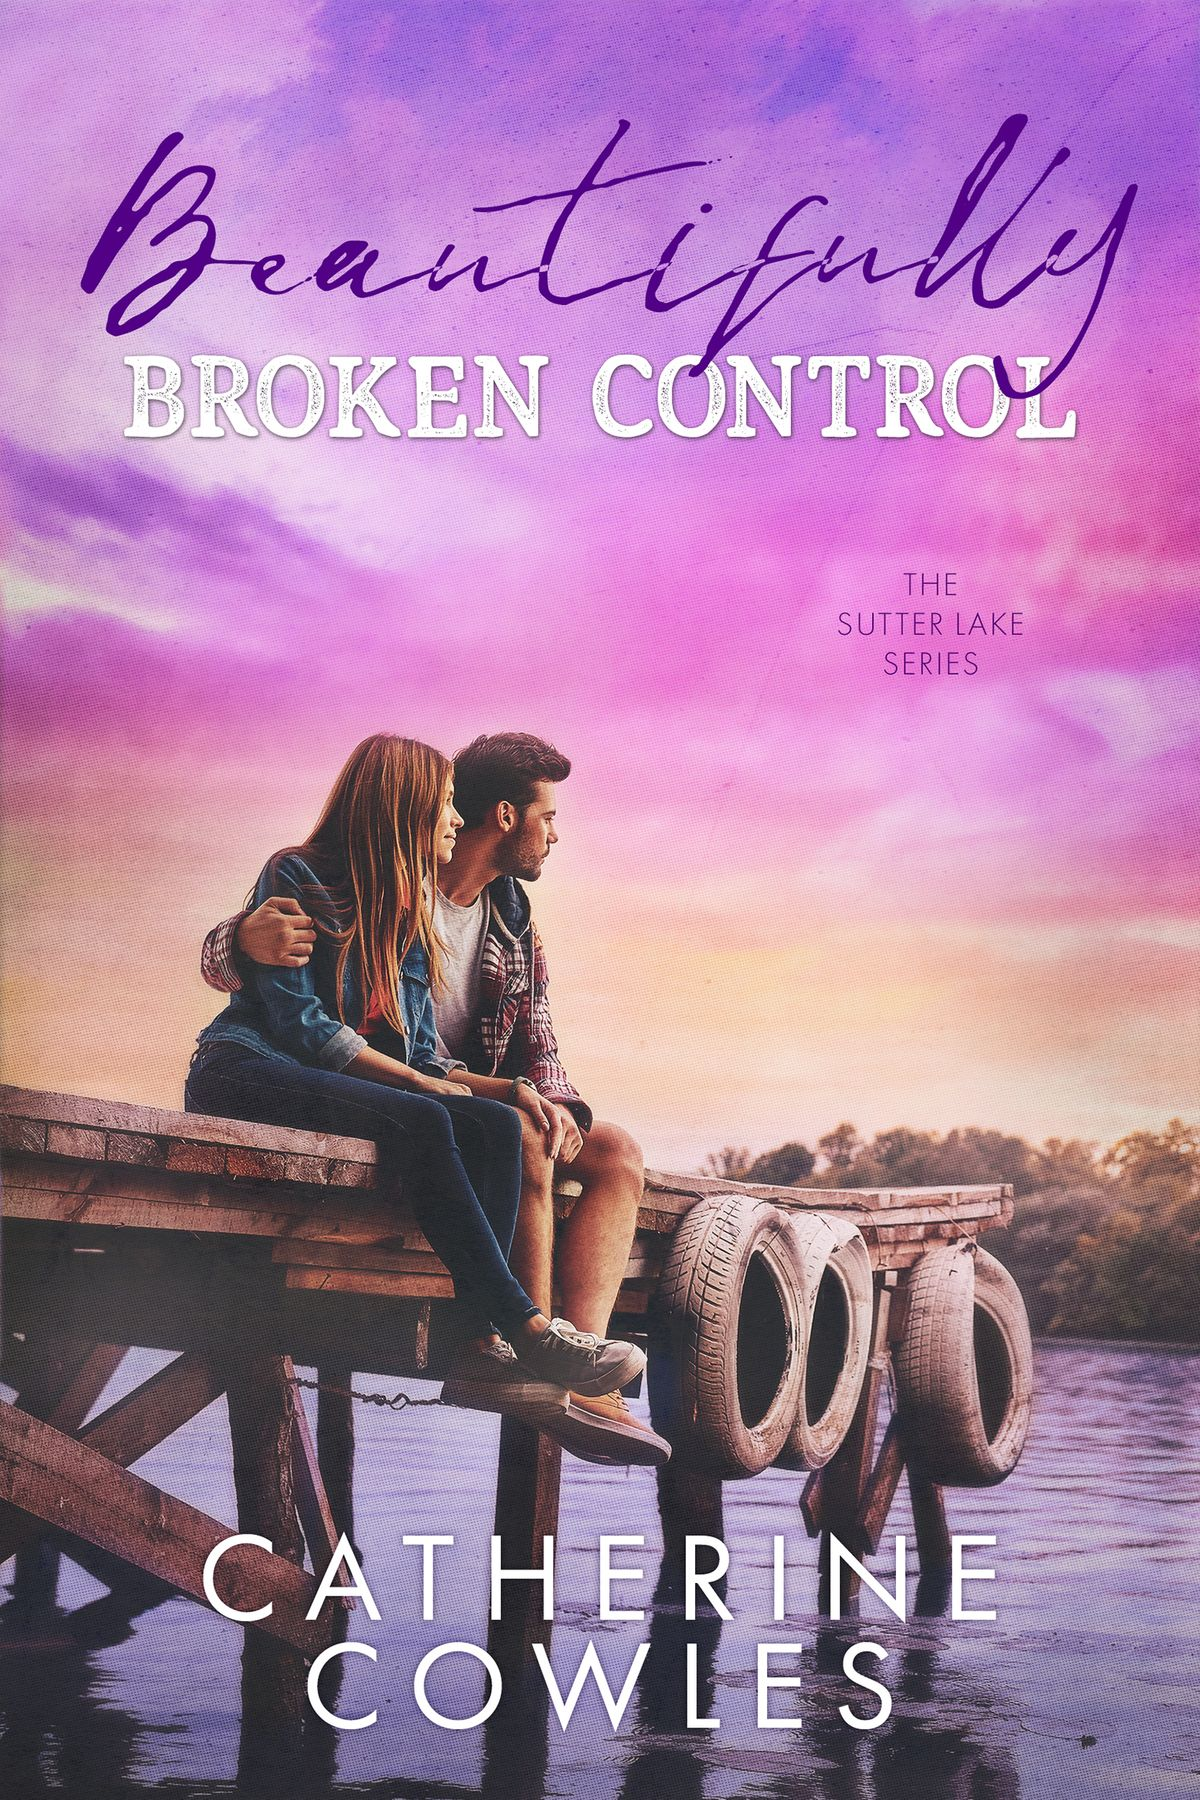 Exclusive Excerpt: Beautifully Broken Control